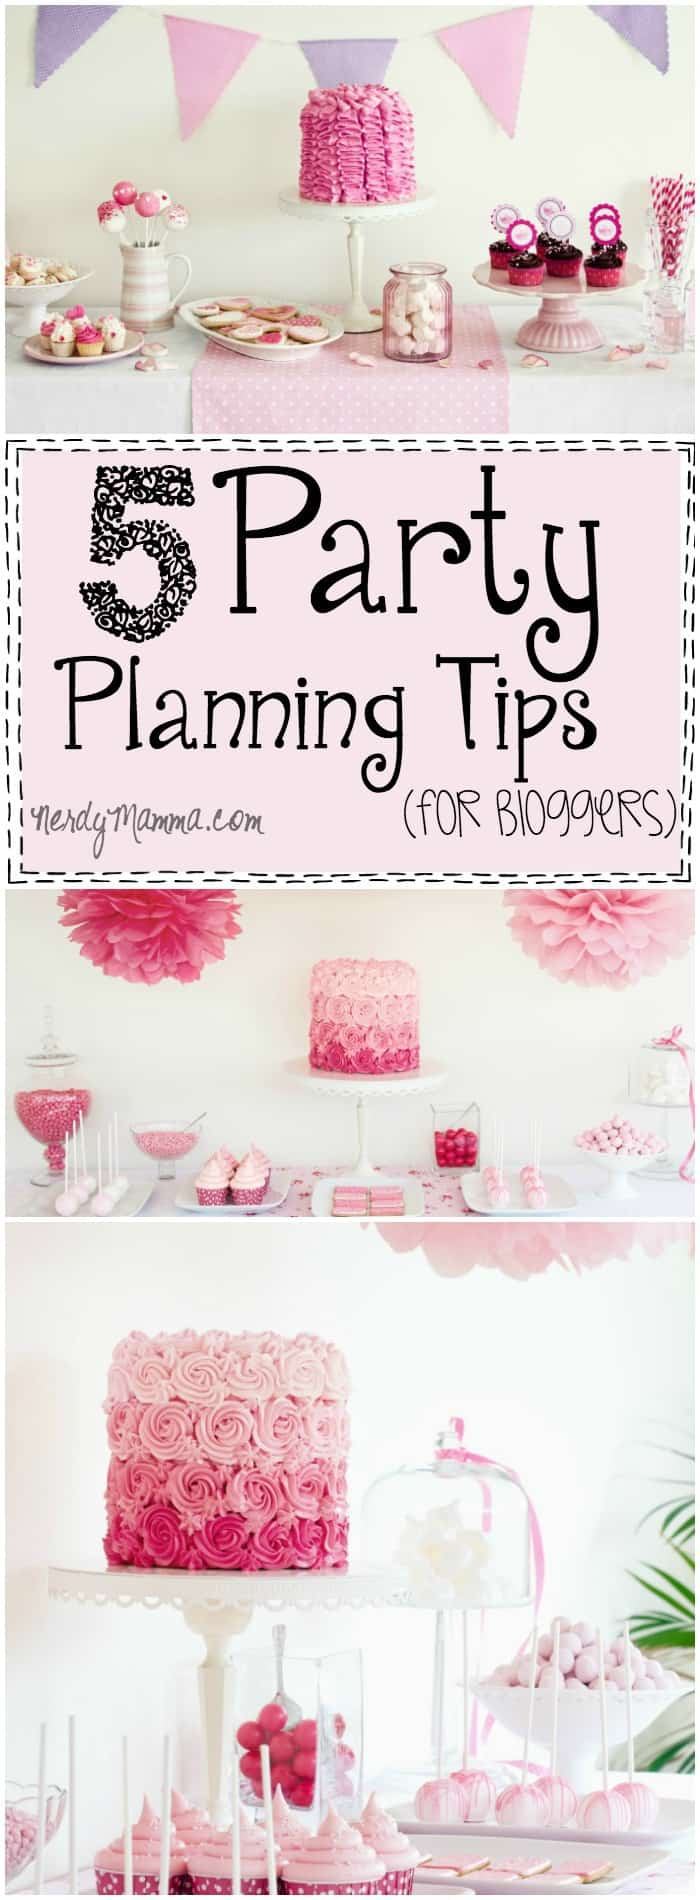 I love how easy she breaks-down the essentials of doing a party layout for a blog. She makes party planning sound so easy! LOL!